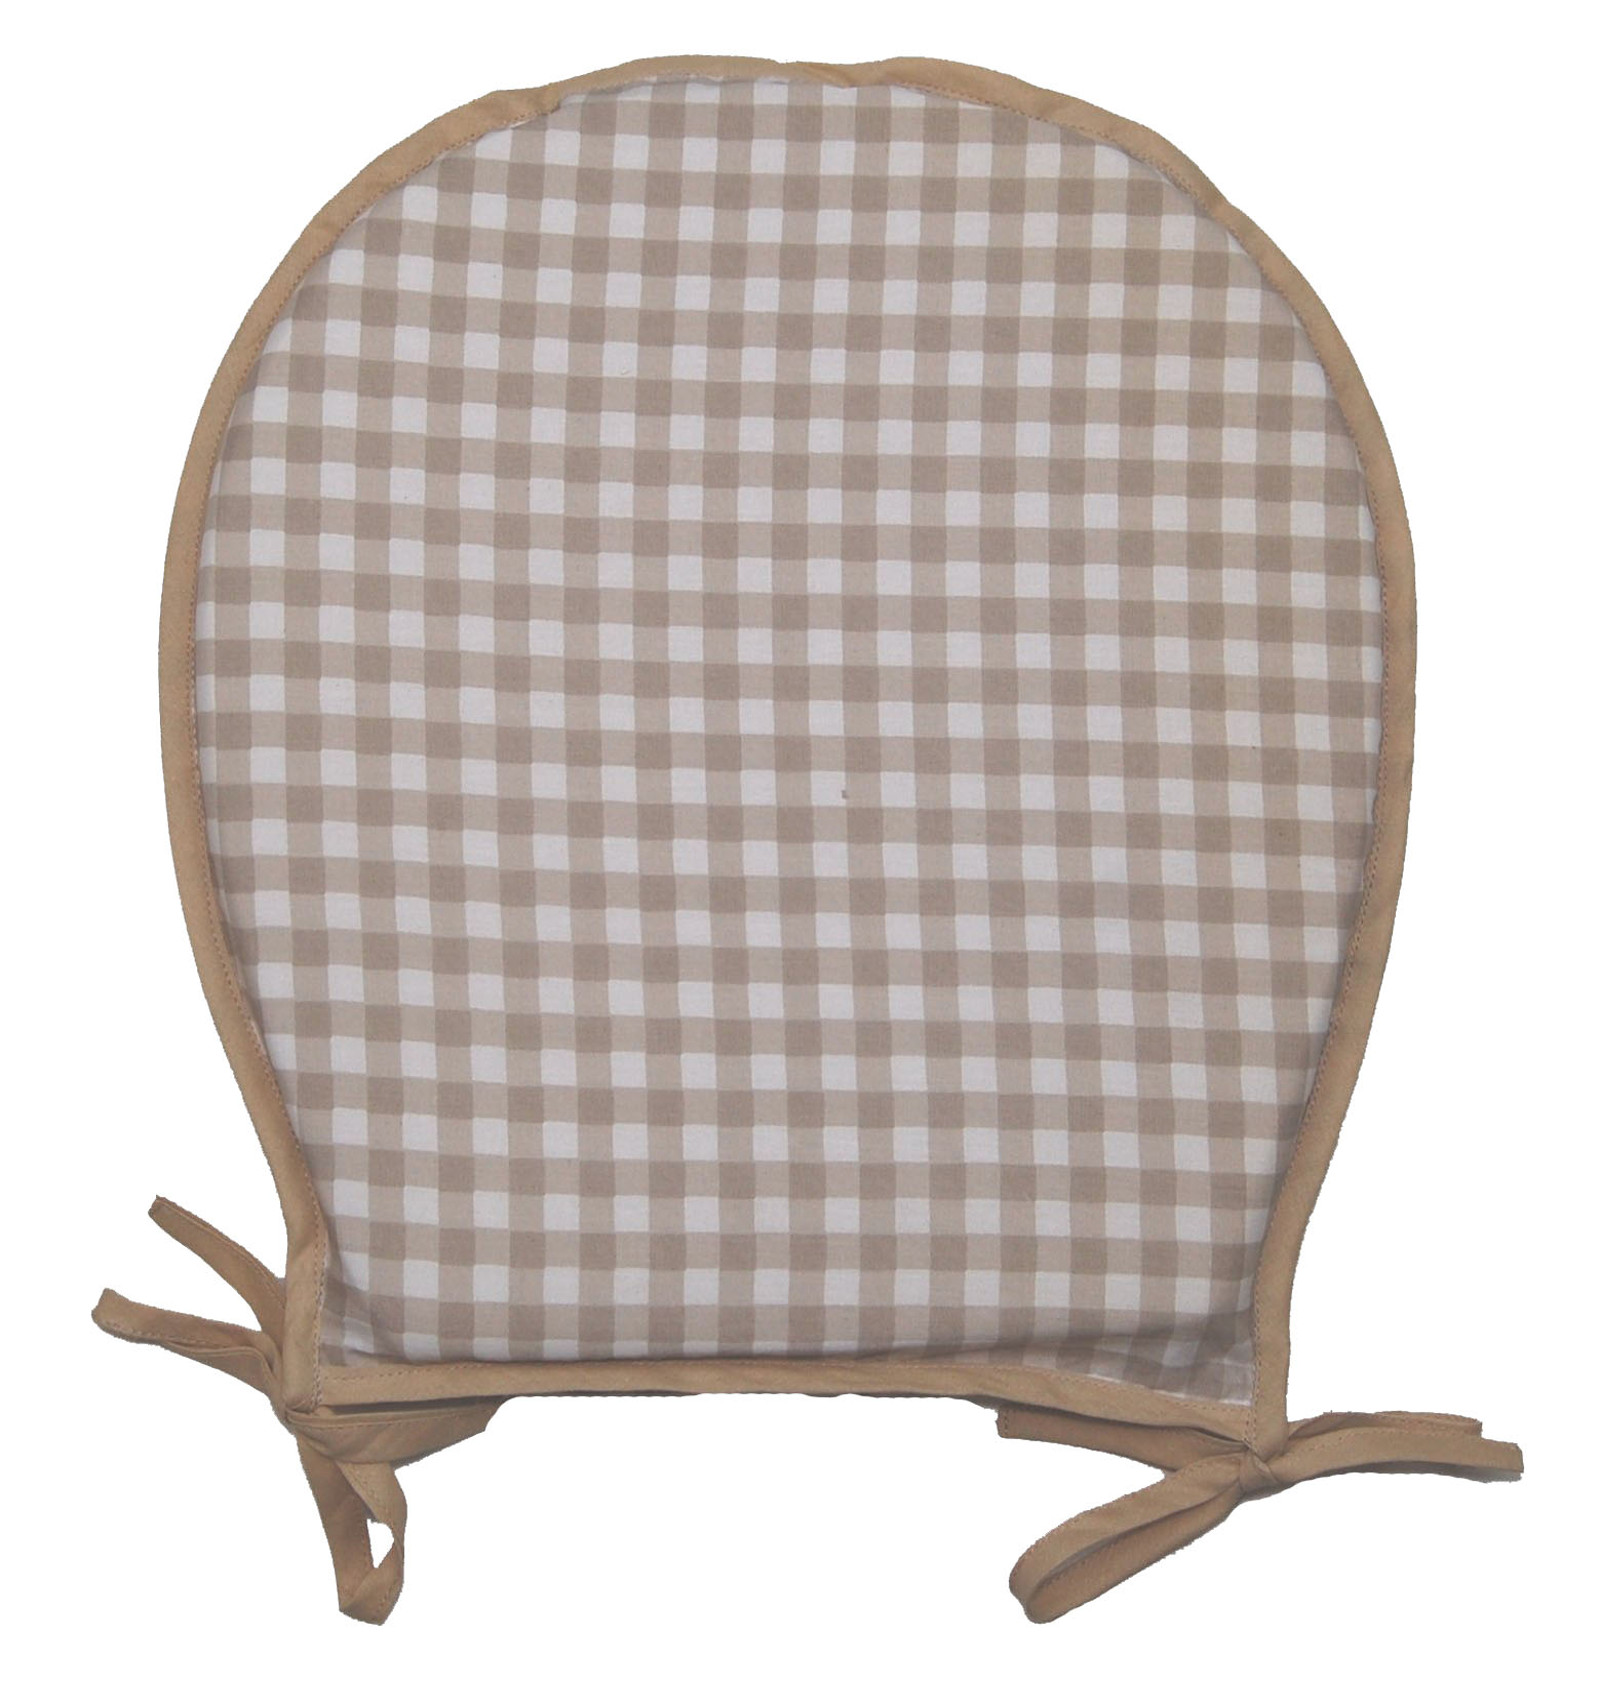 cotton dining chair covers uk sage green cushions 100 gingham check round seat pad garden